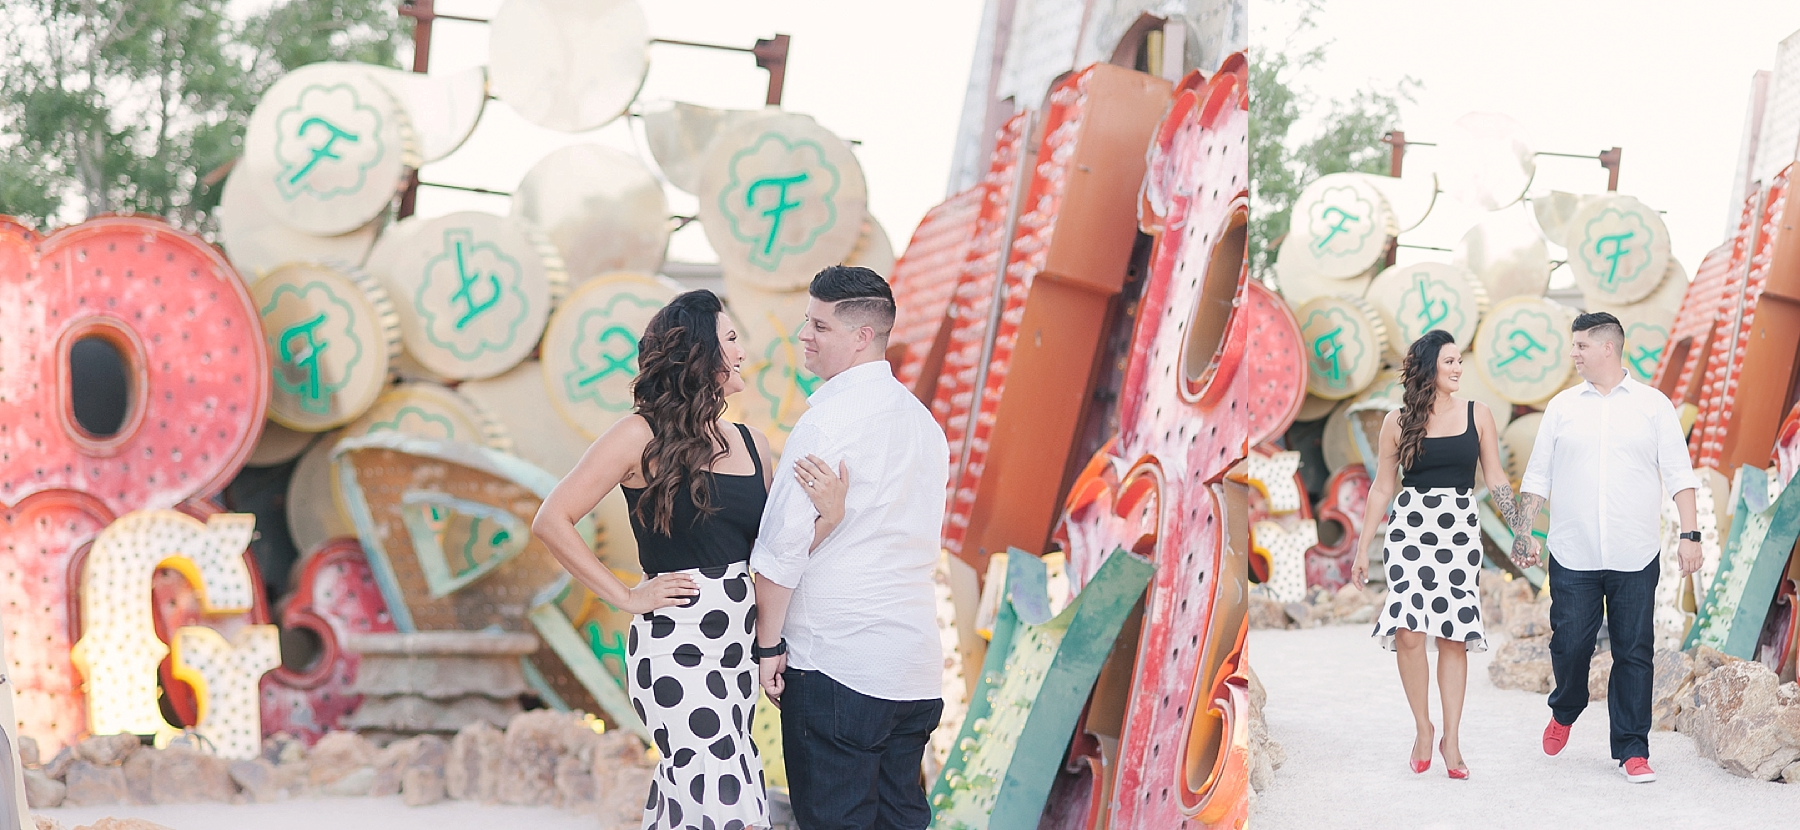 Neon_Museum_Las_vegas_downtown_engagement_photos-17.jpg